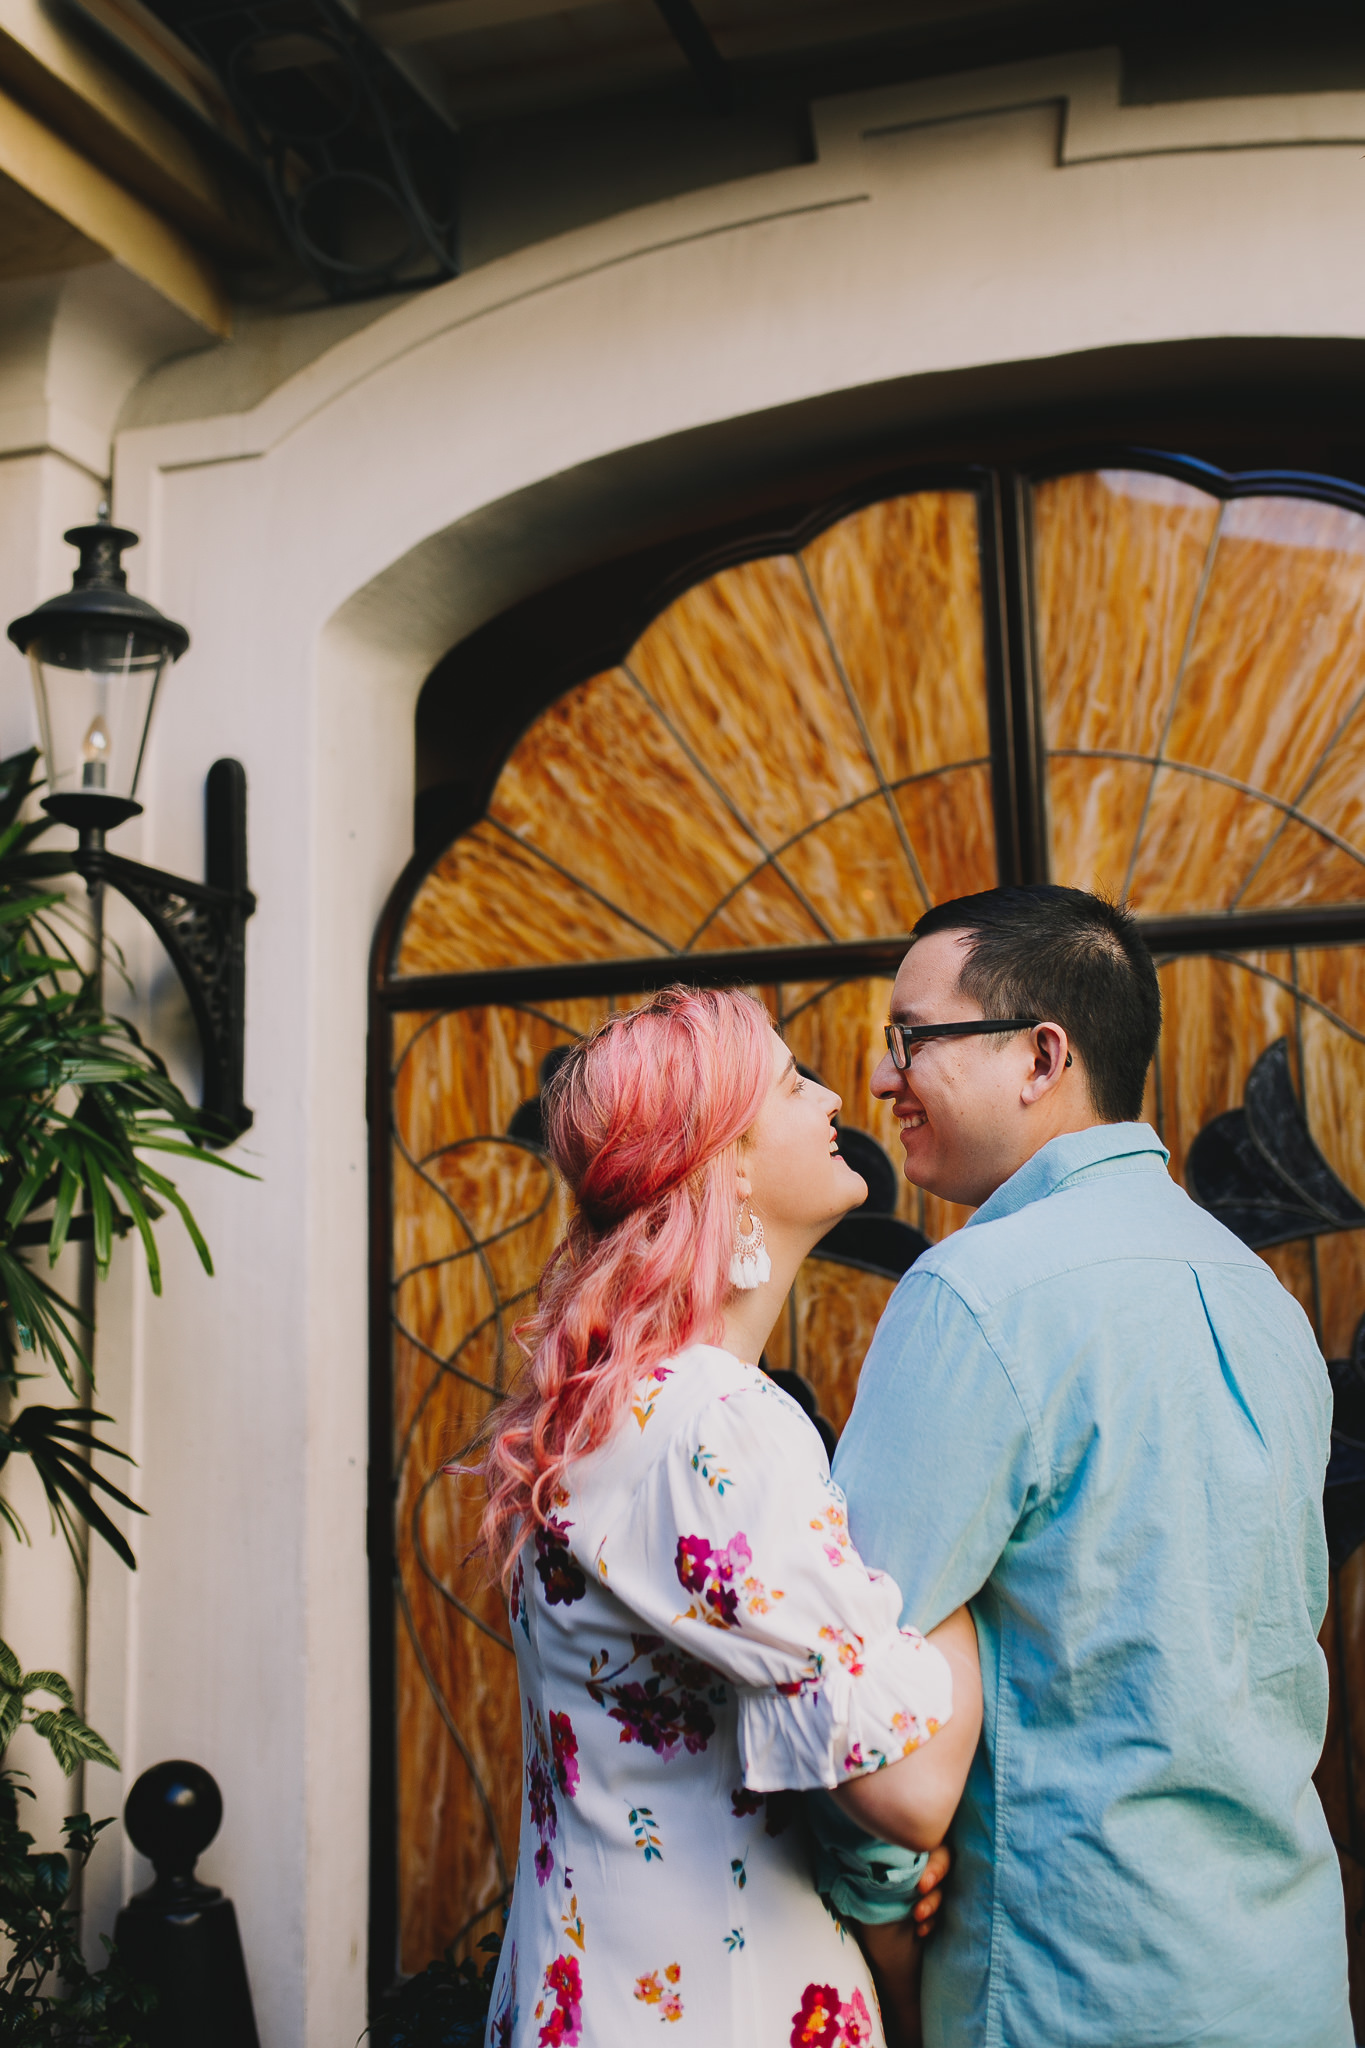 Archer Inspired Photography Disneyland Engagement Wedding Session Southern California Kayla and Kevin Lifestyle Documentary-16.jpg